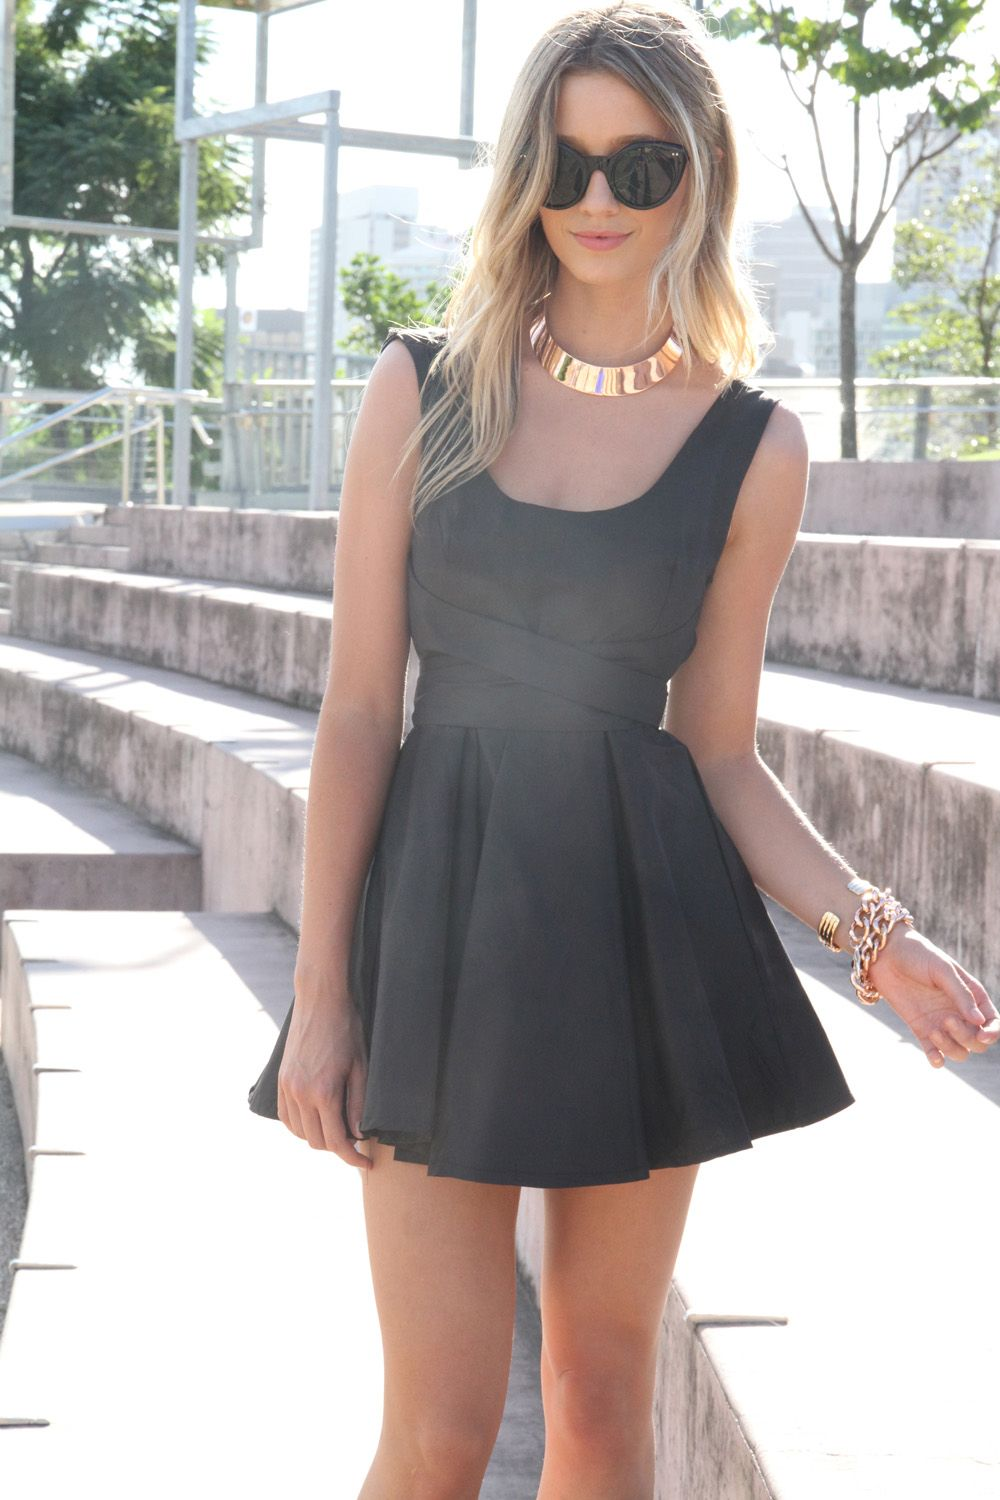 Pin By Southern Miss On Black Gold For Her Clothes For Women Clothes Dresses [ 1500 x 1000 Pixel ]